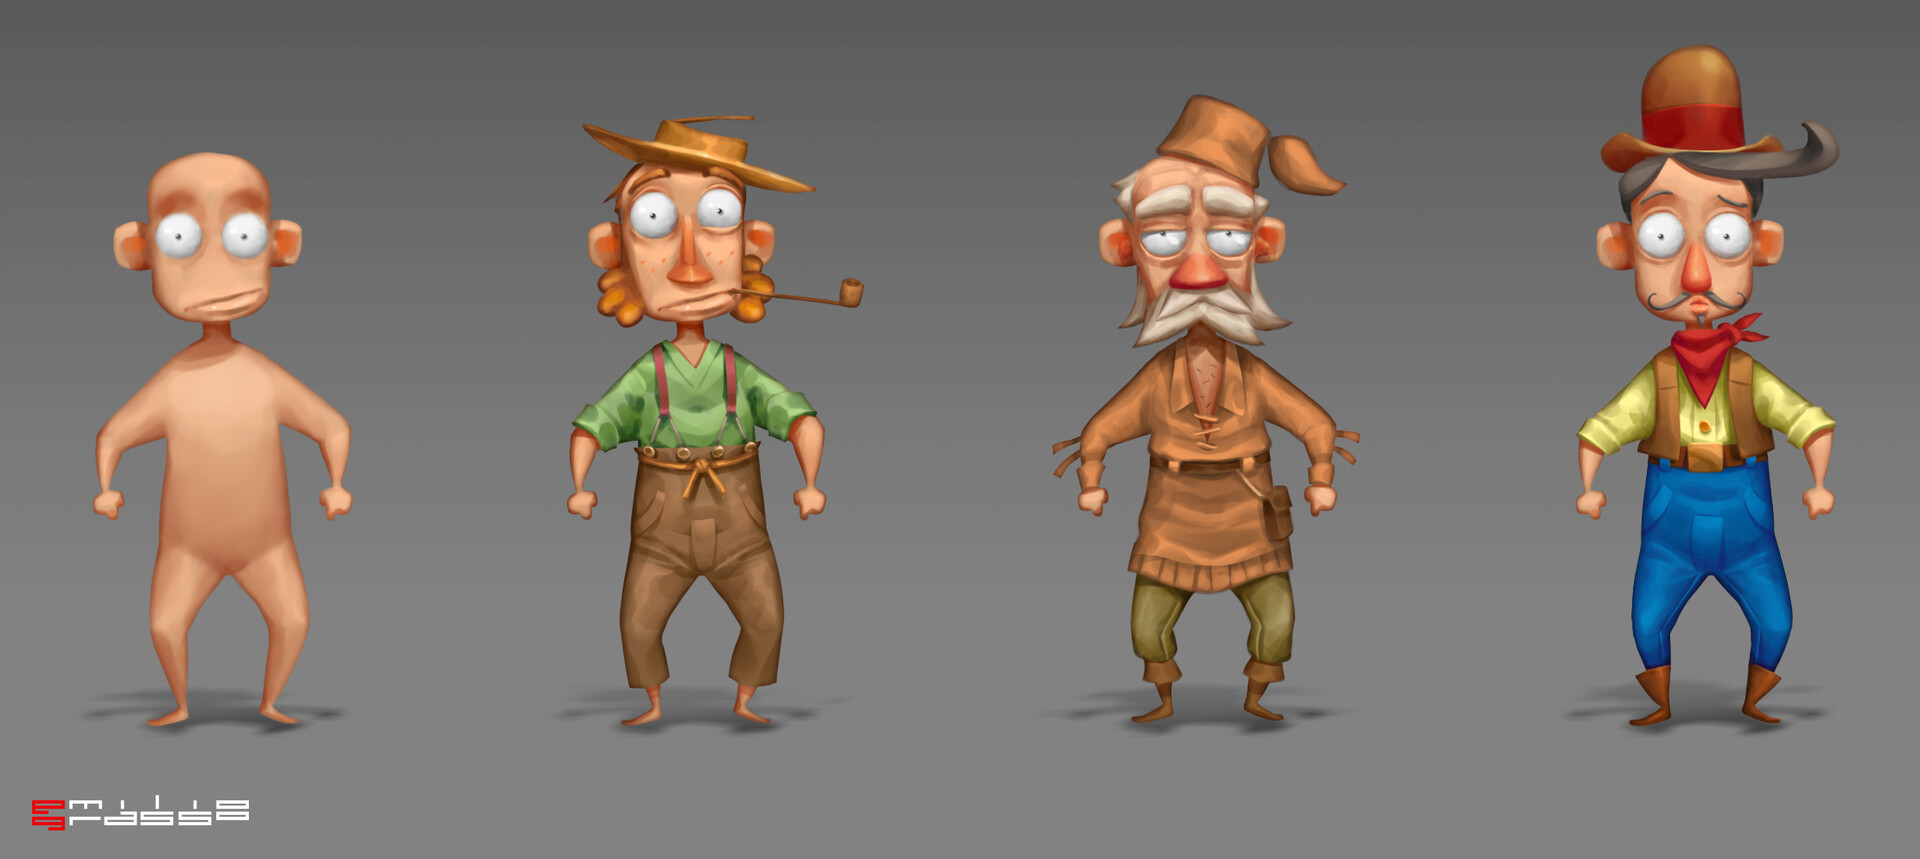 Emilio grasso characters style3